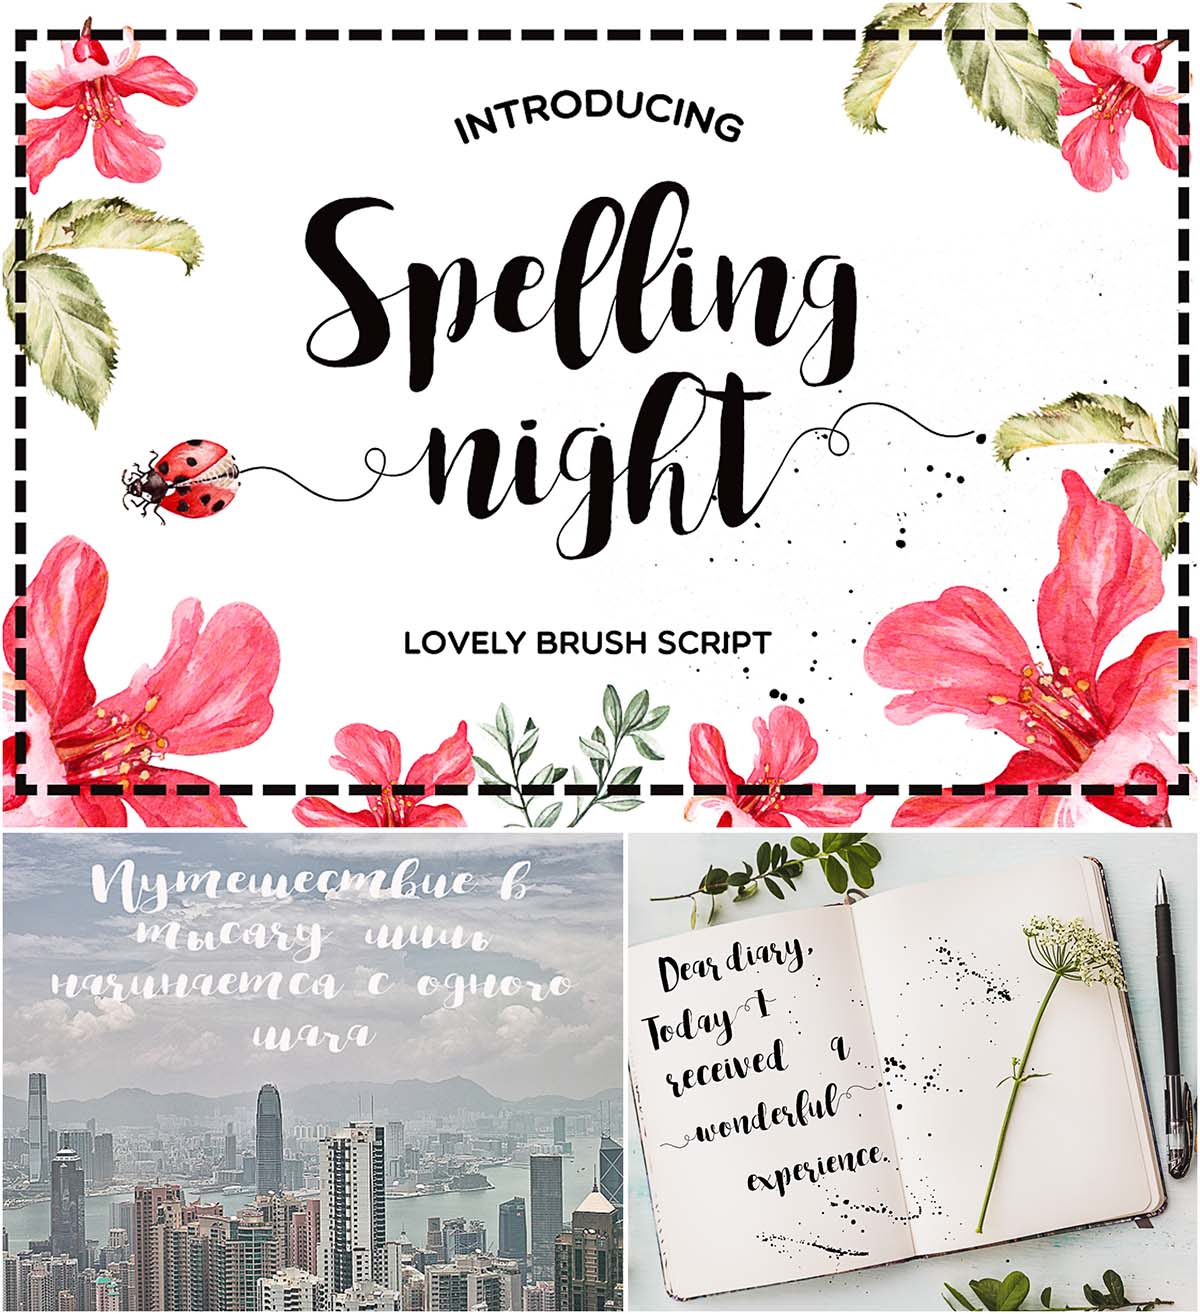 Spelling night cyrillic typeface set of fonts